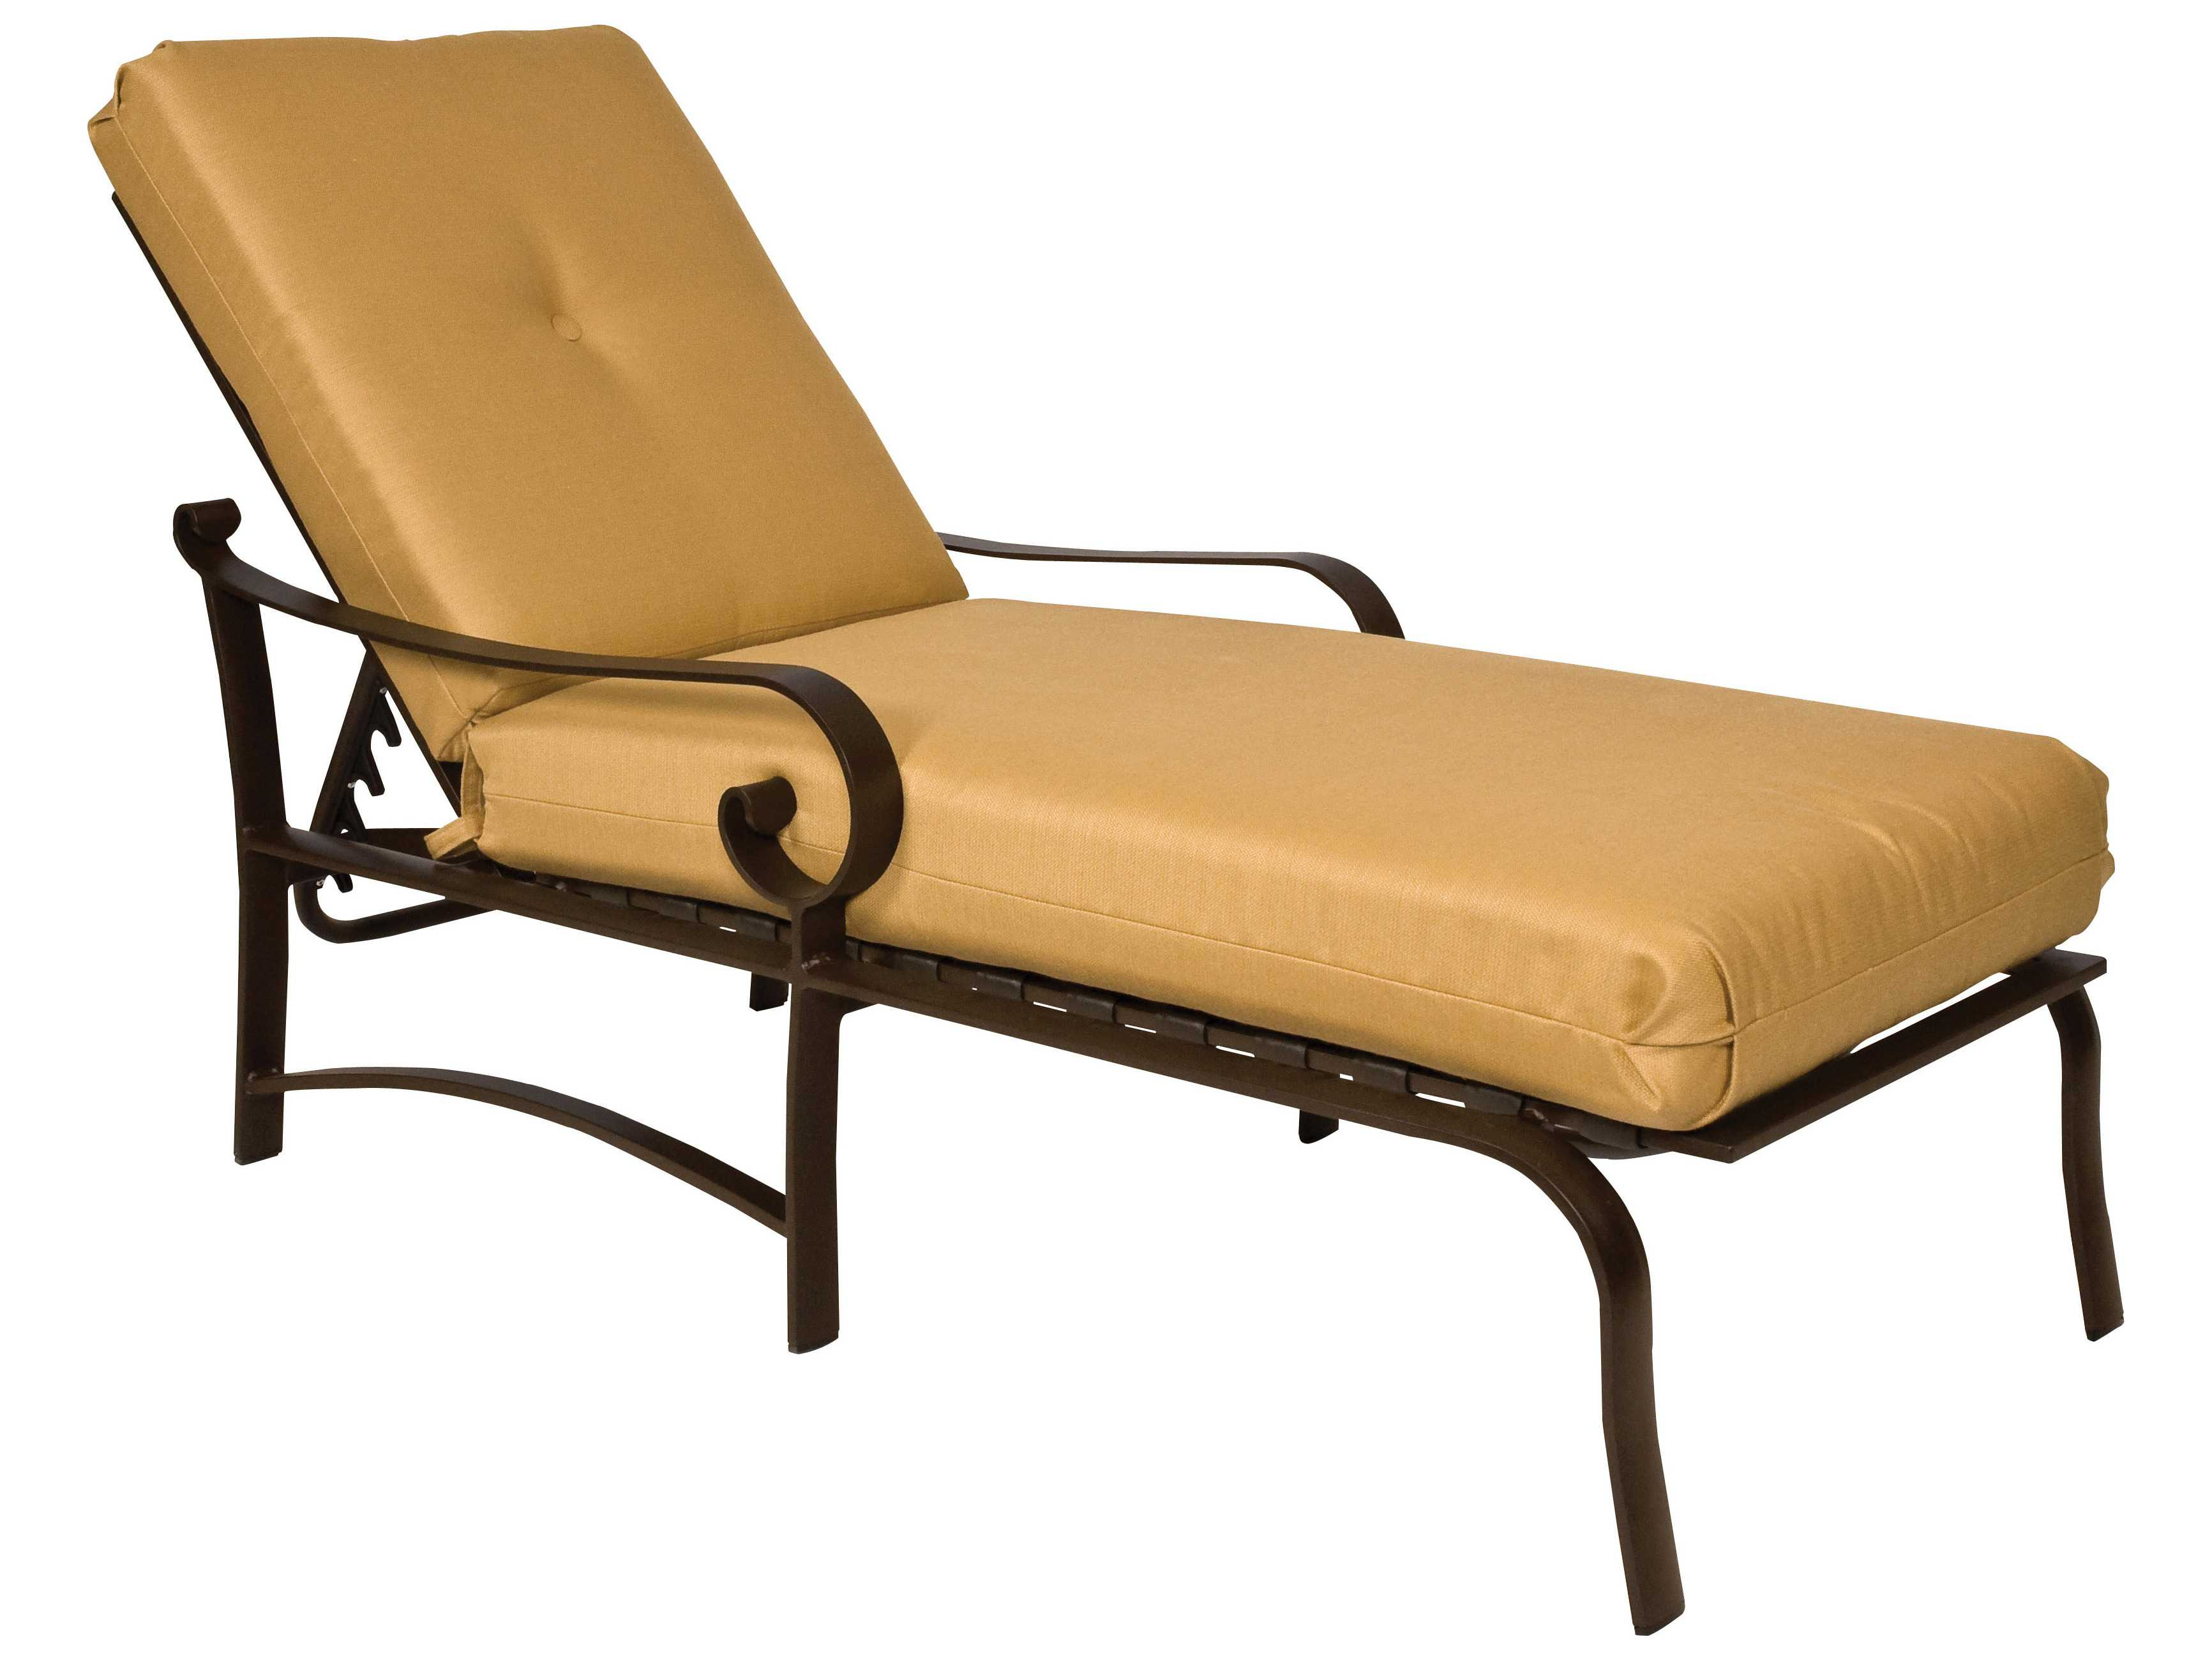 Woodard belden cushion aluminum adjustable chaise lounge for Chaise longue textilene alu